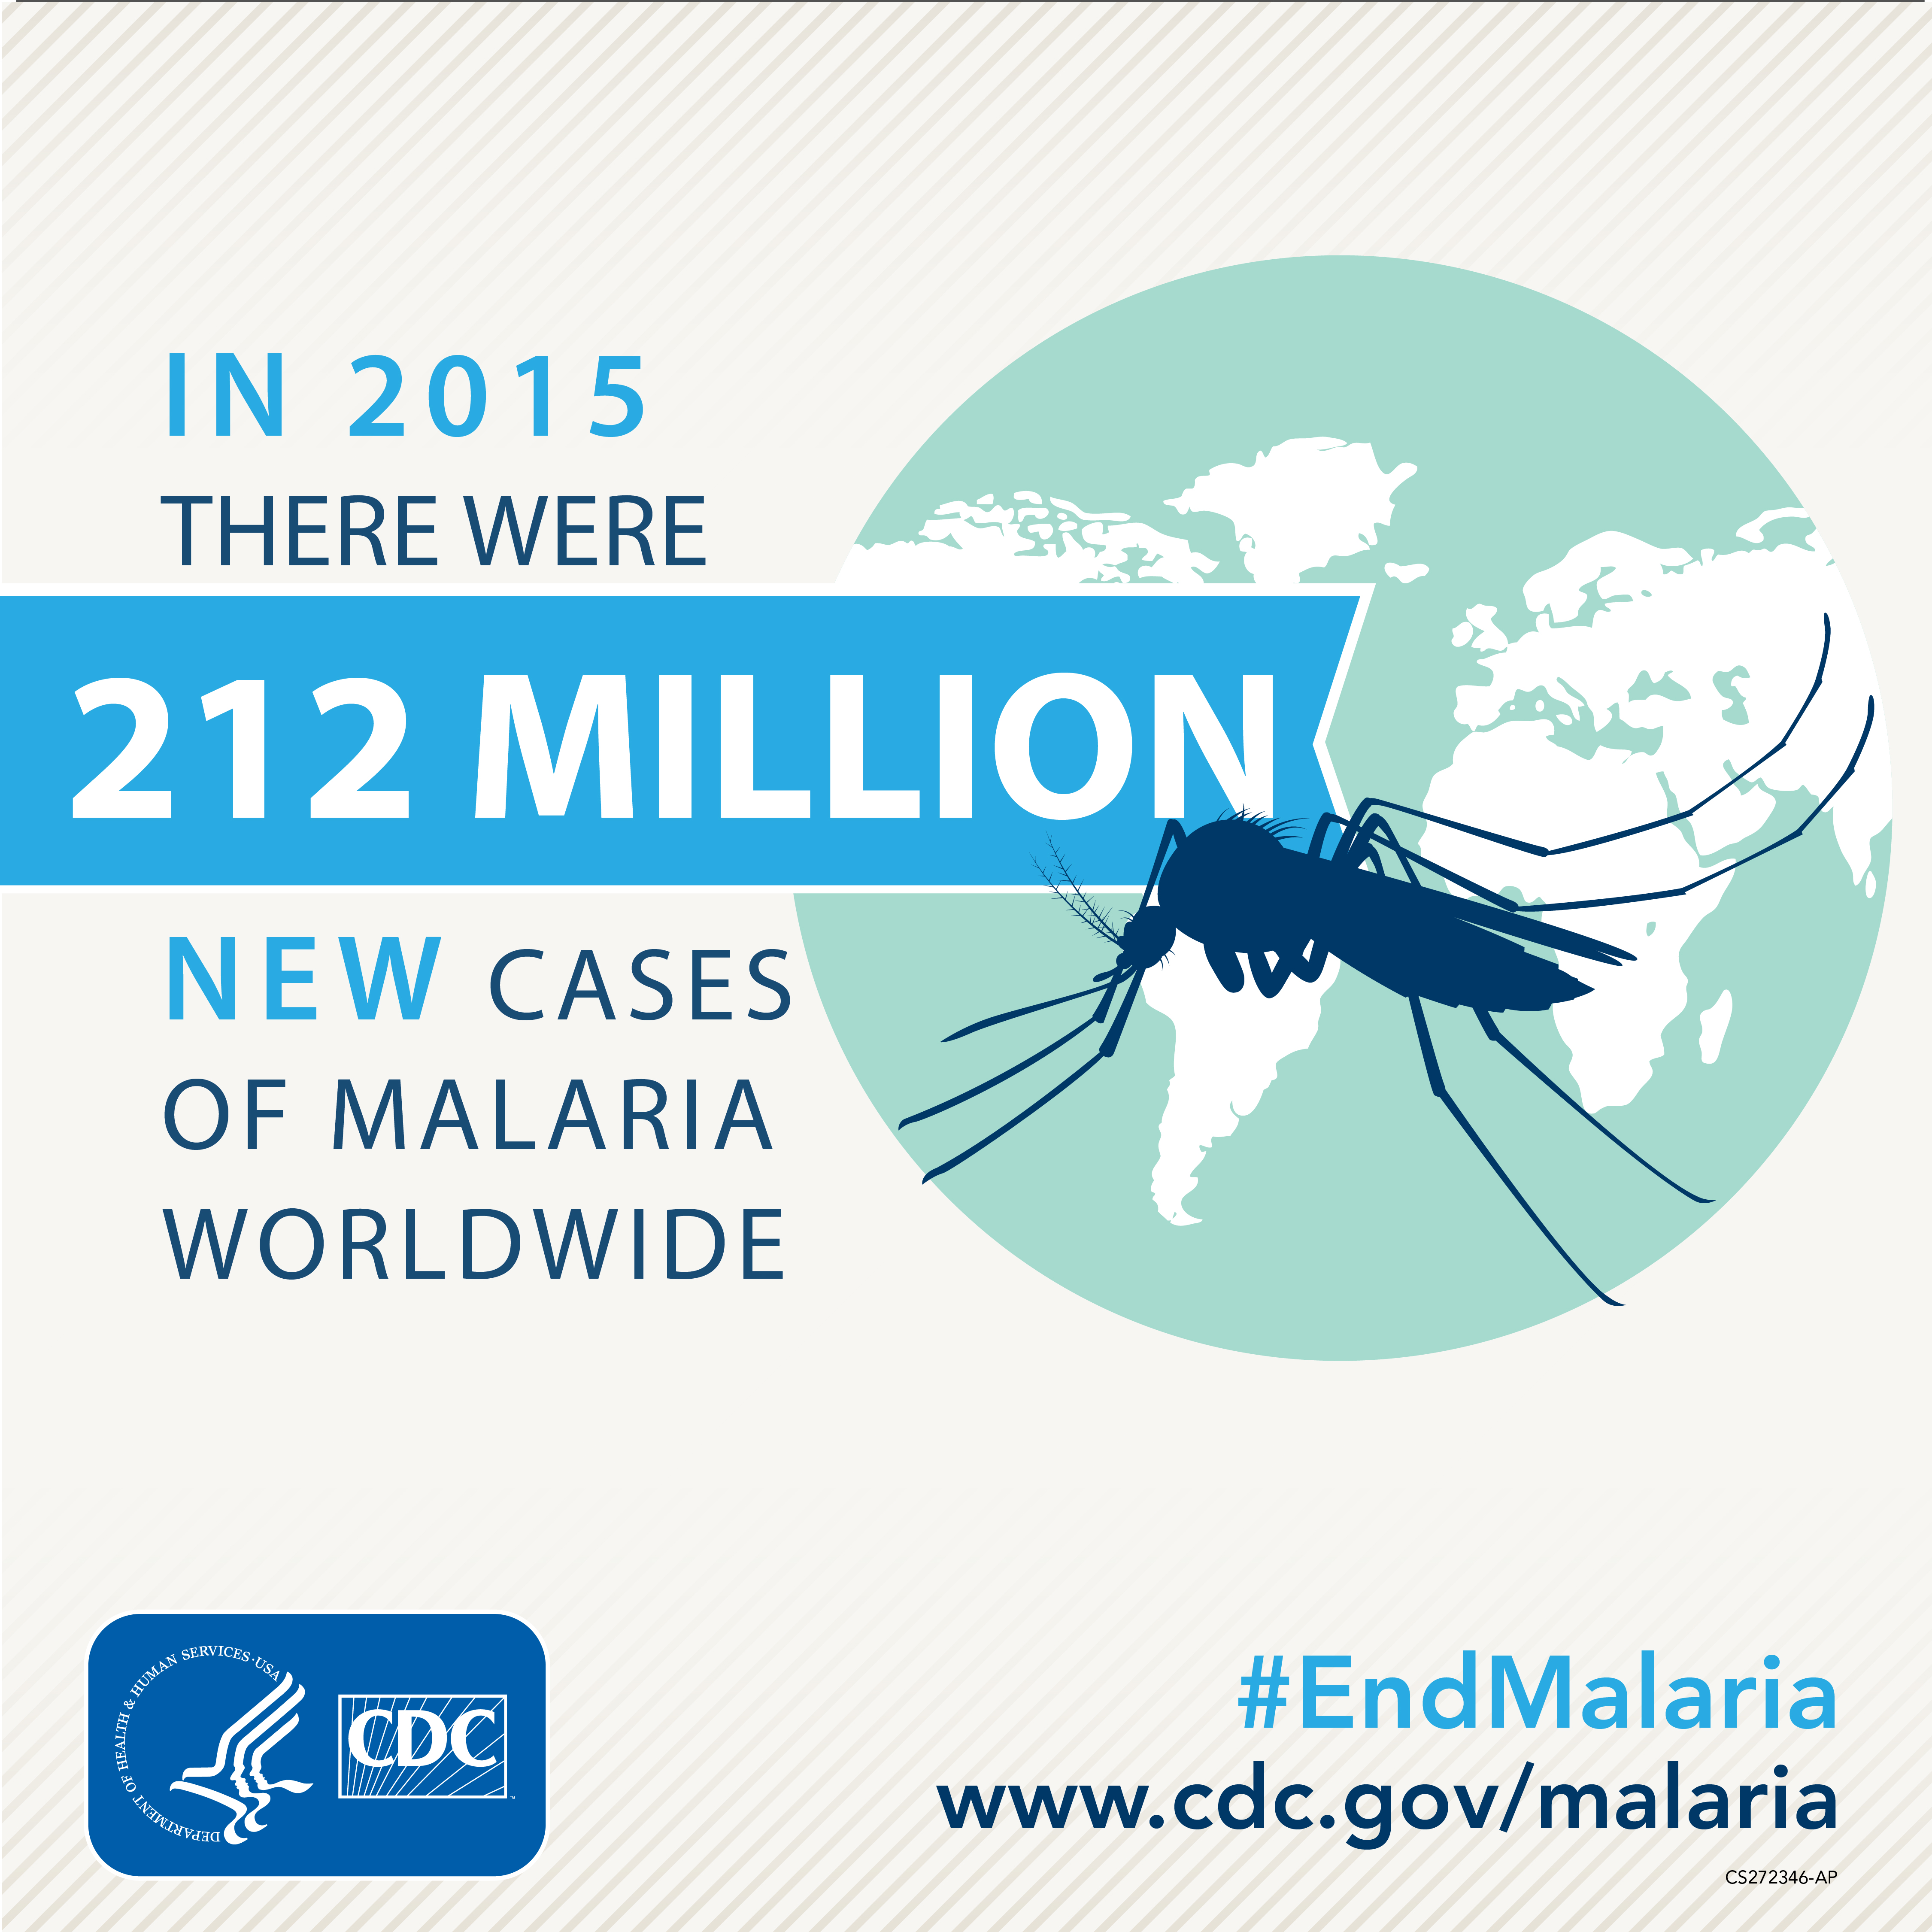 In 2015 ther were 212 million new cases of malaria worldwide